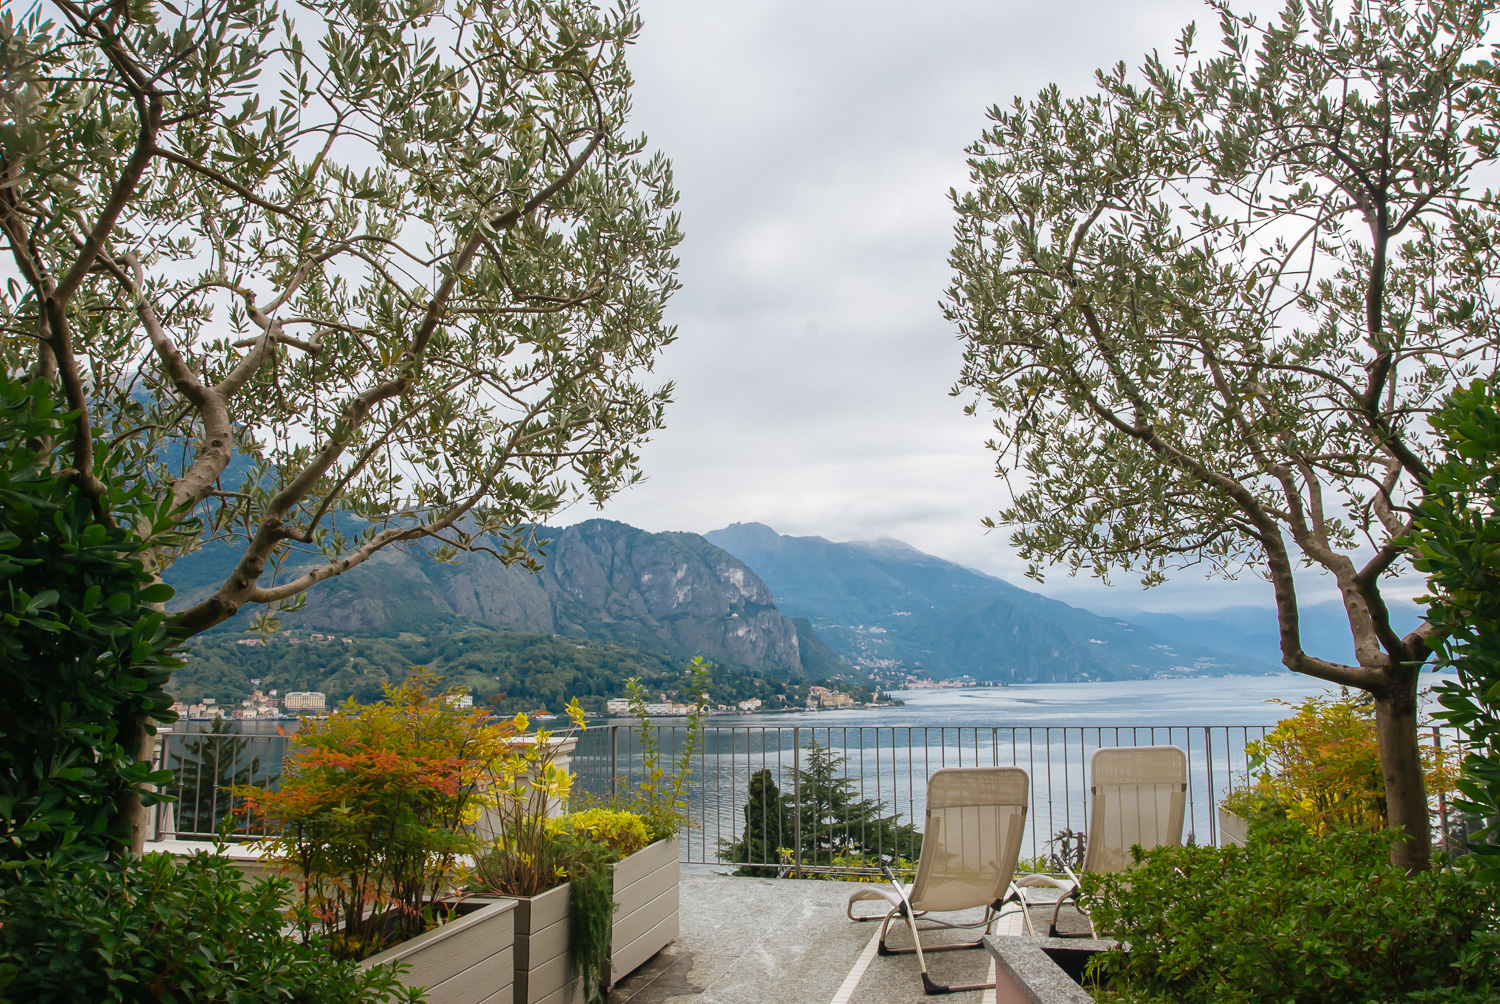 The view from our hotel room in Lake Como